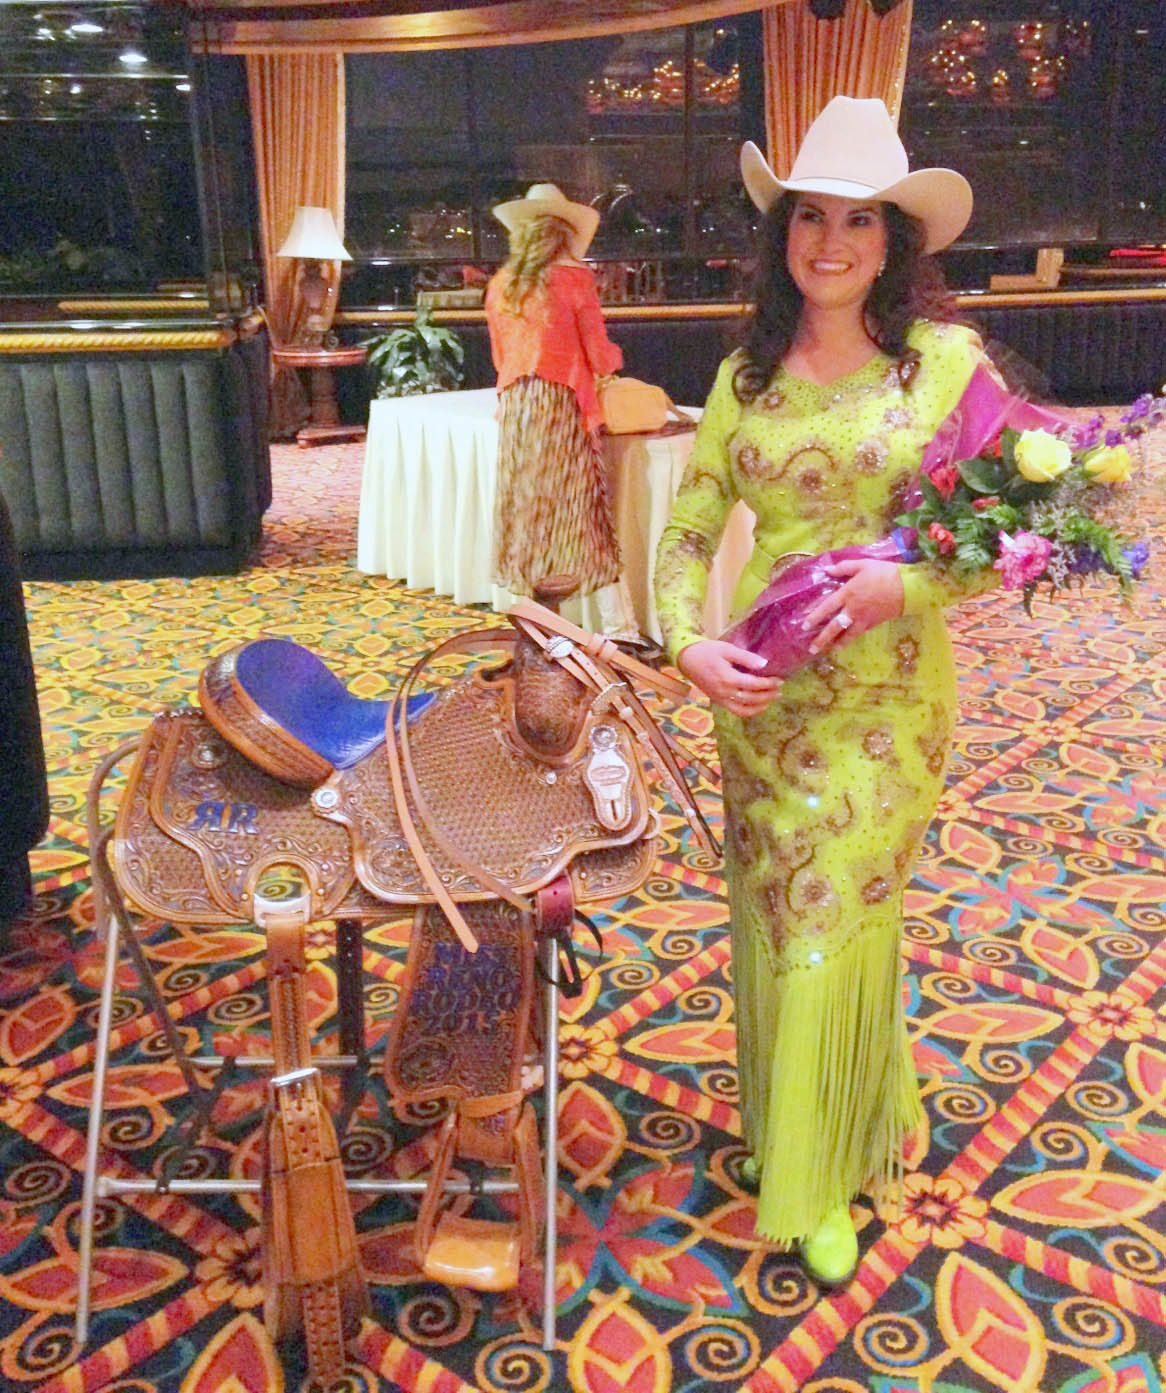 Former MCHS student named Miss Reno Rodeo